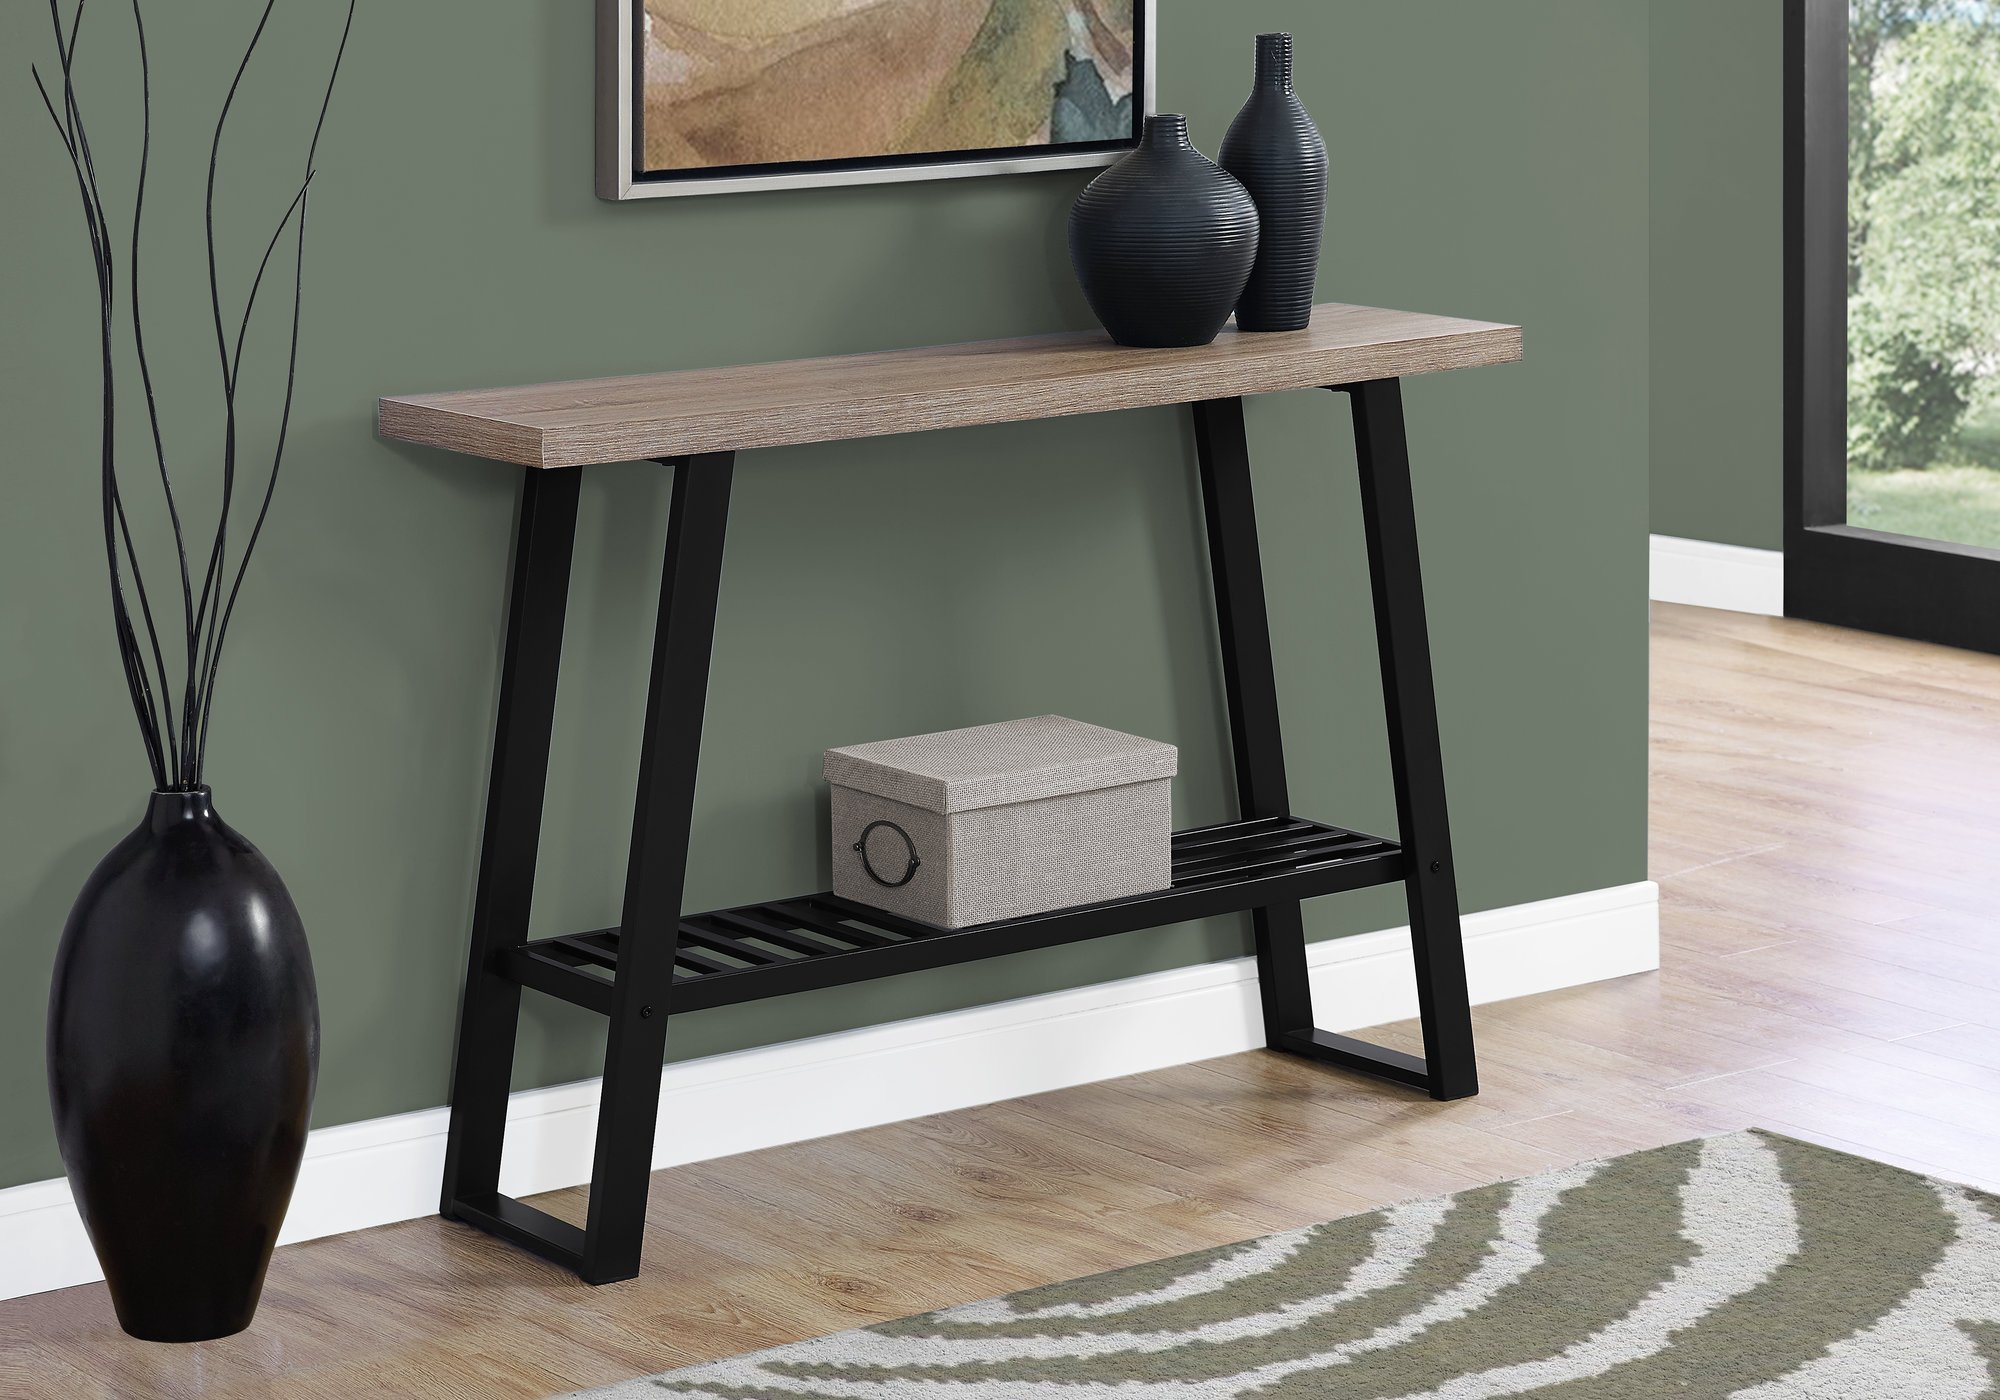 monarch specialties accent table dark taupe black hall console small round metal outdoor target windham side mid century dining bench coffee with wheels inch bar storage furniture